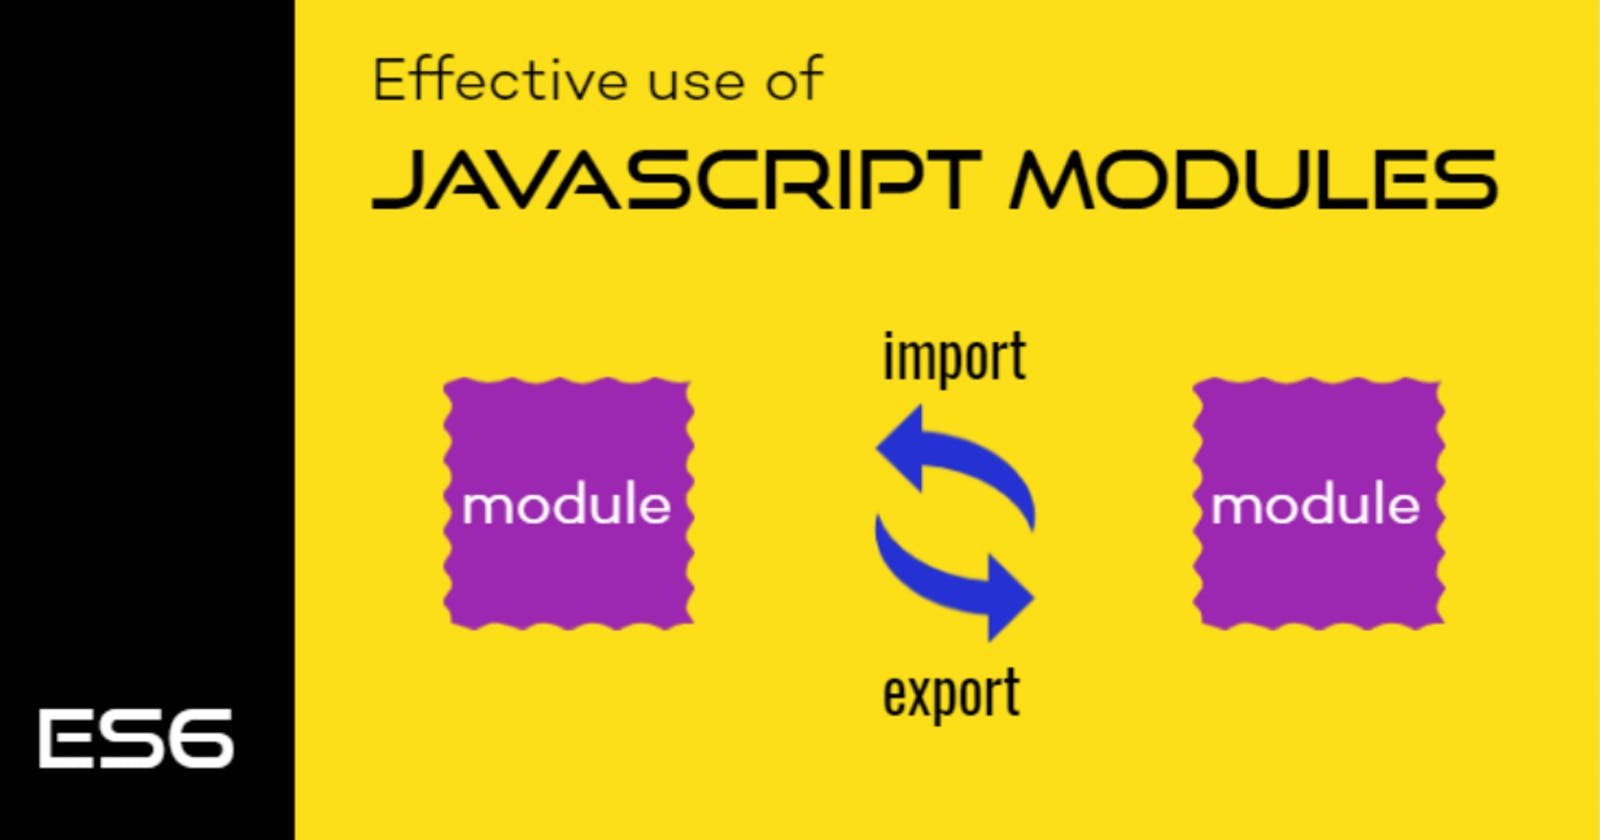 JavaScript Modules and how to effectively work with Export Import